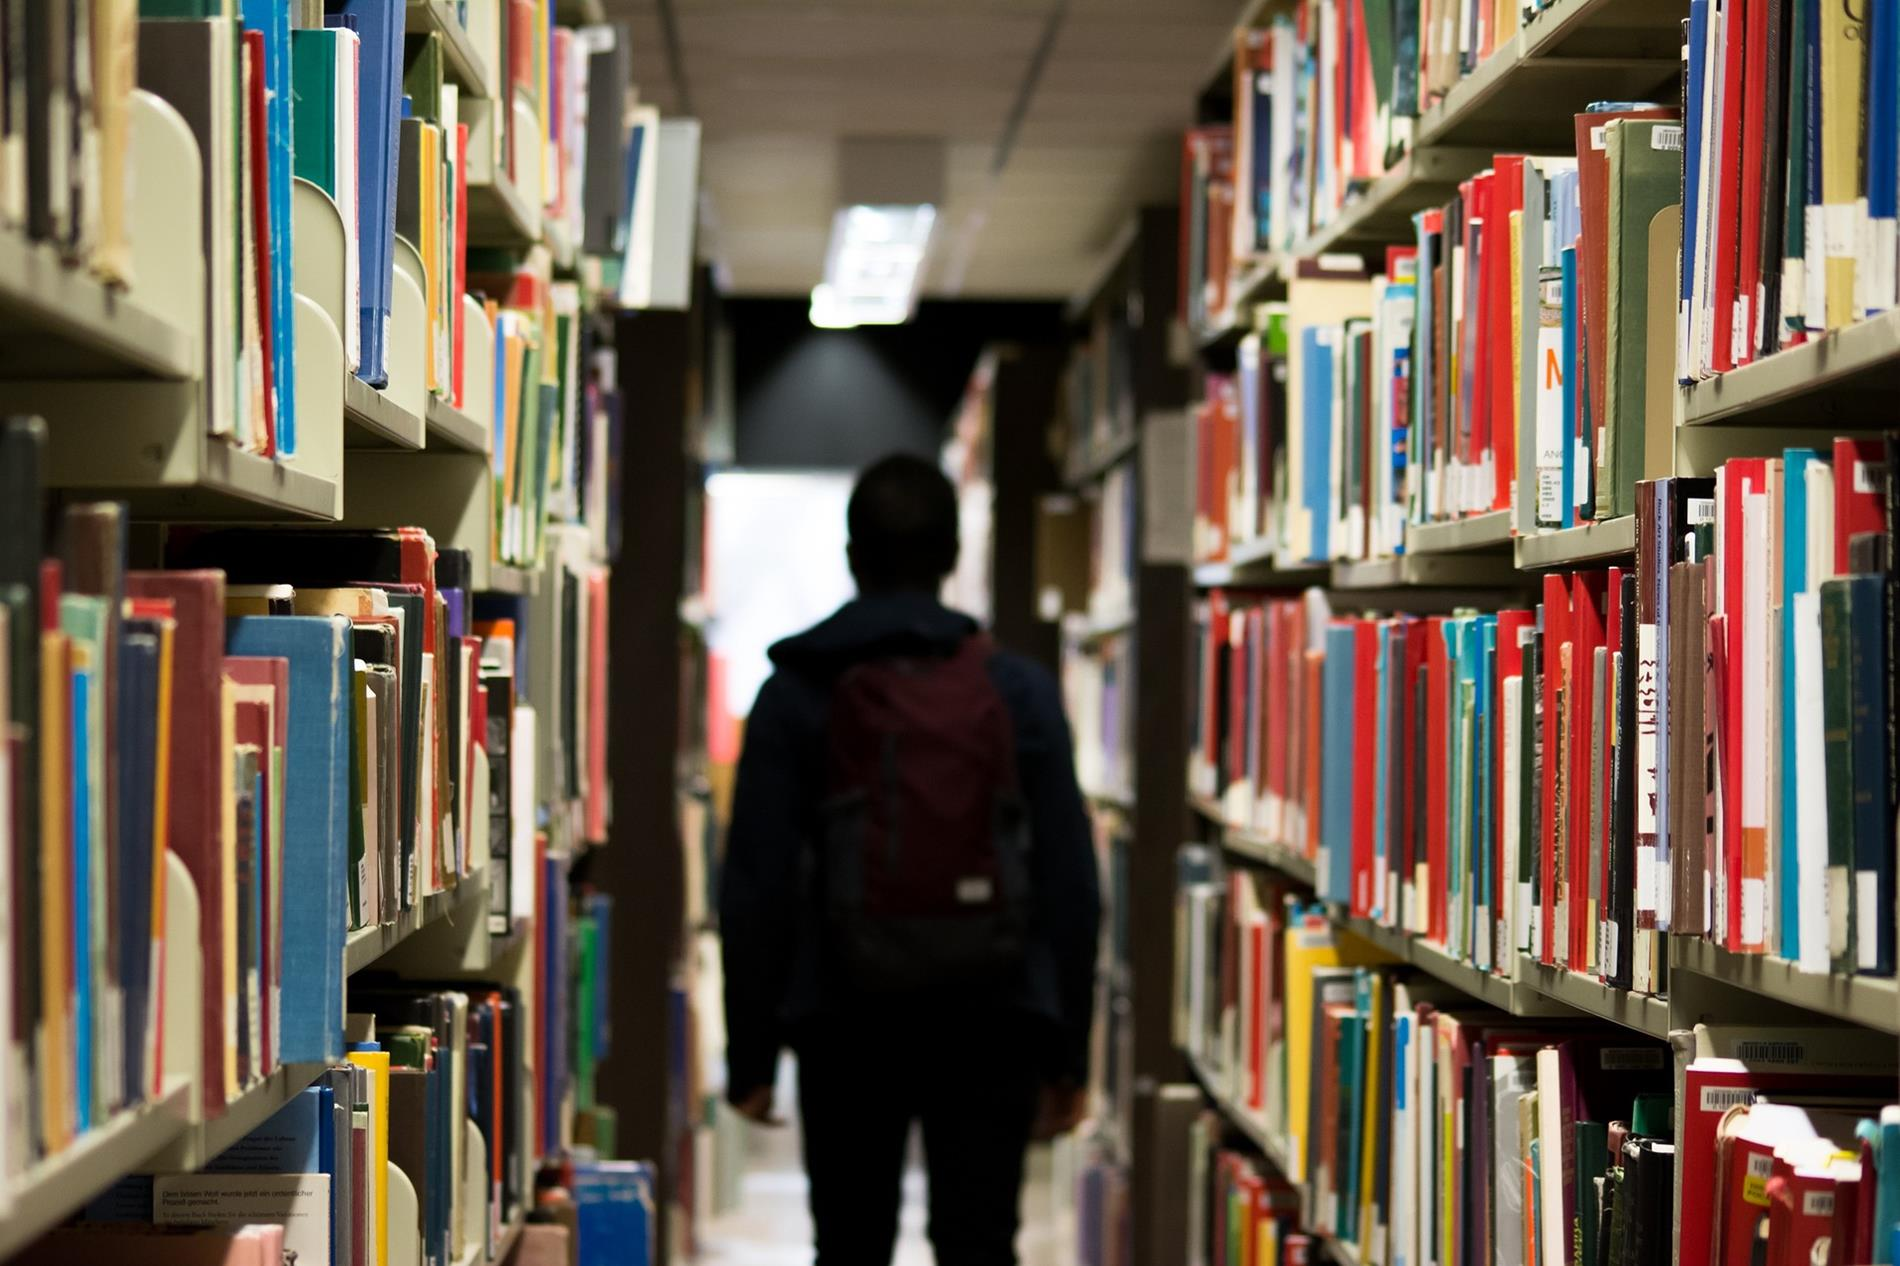 silhouette of a person walking away between shelves of books in a library